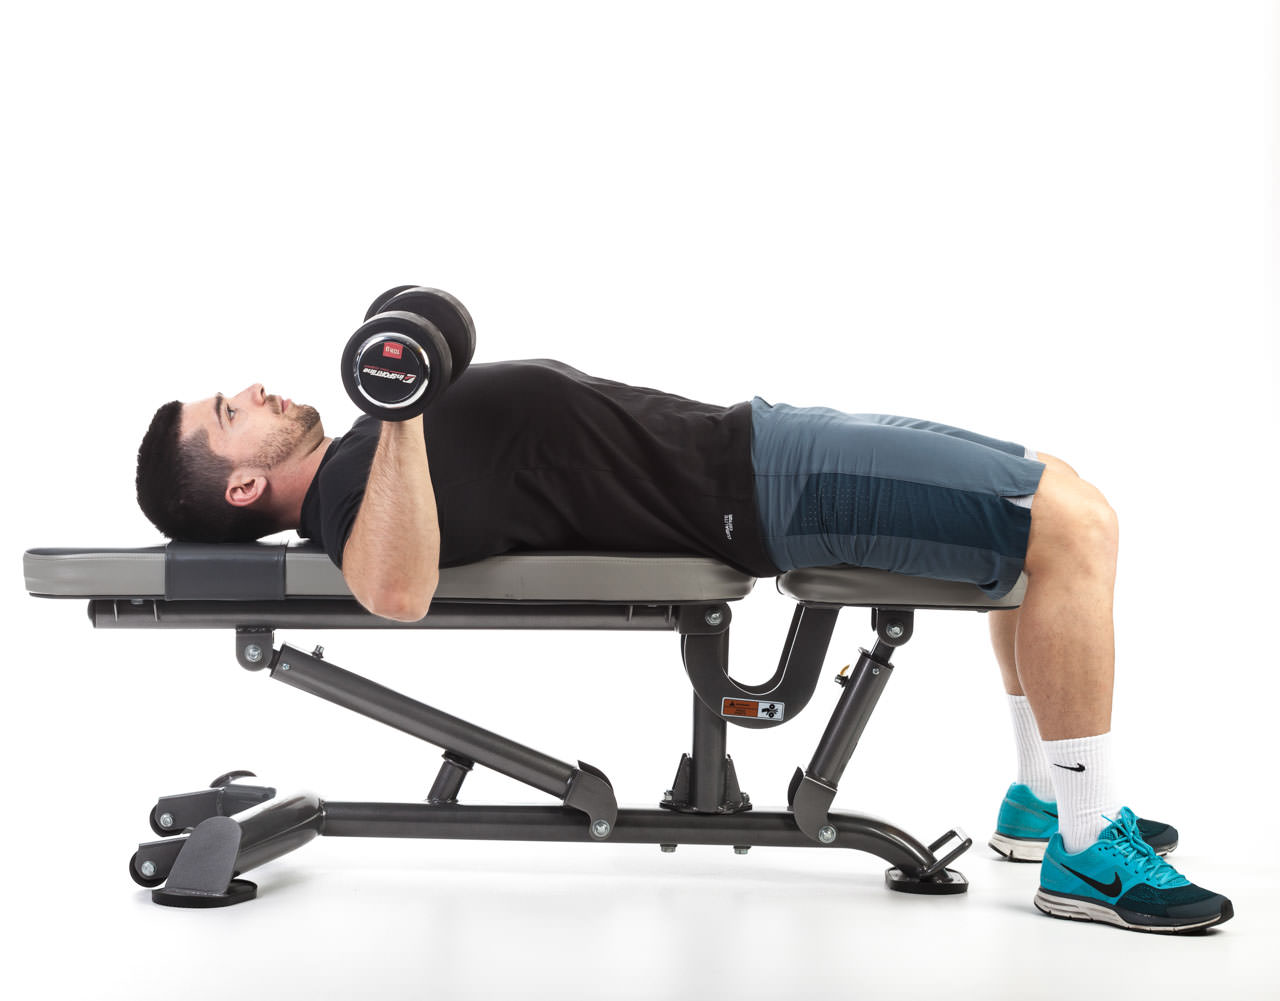 Dumbbell Bench Press with Rotation frame #1